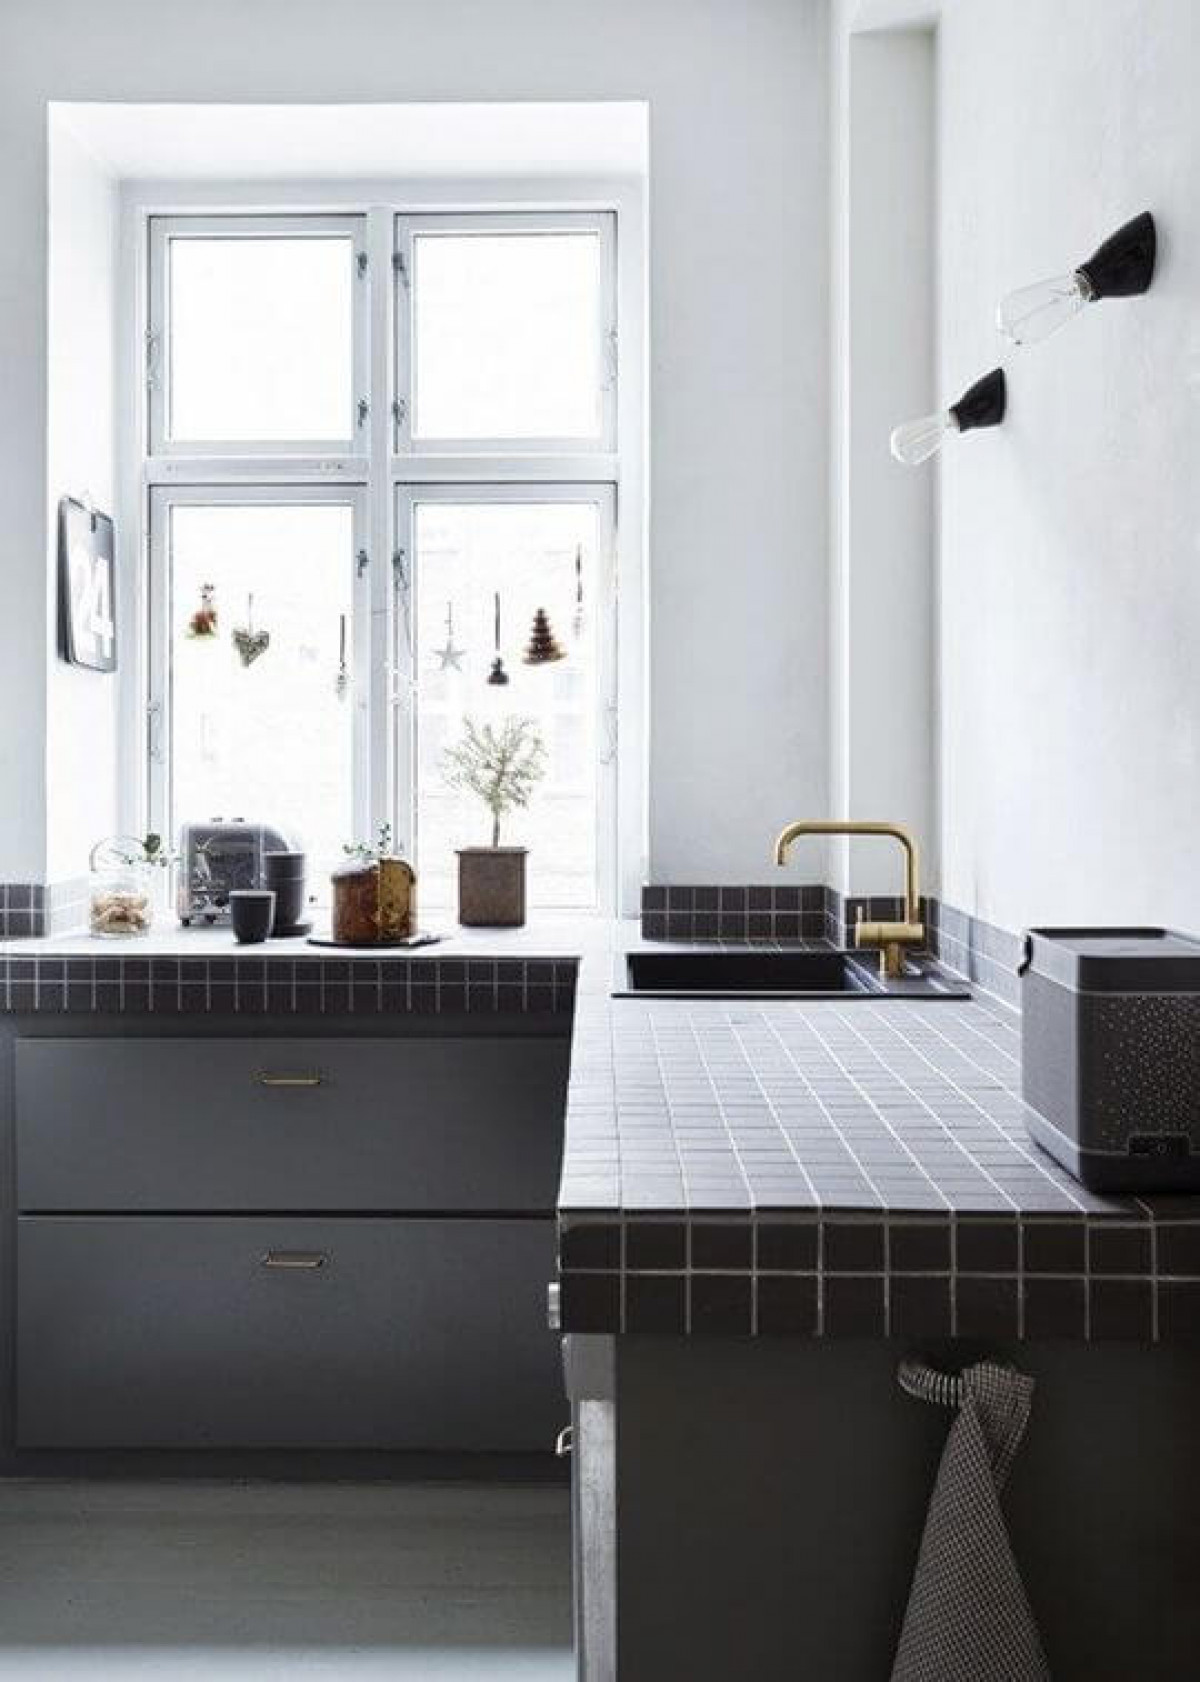 Kitchen Worktop Tiles The Pros Cons Of A Tiled Kitchen Surface British Ceramic Tile